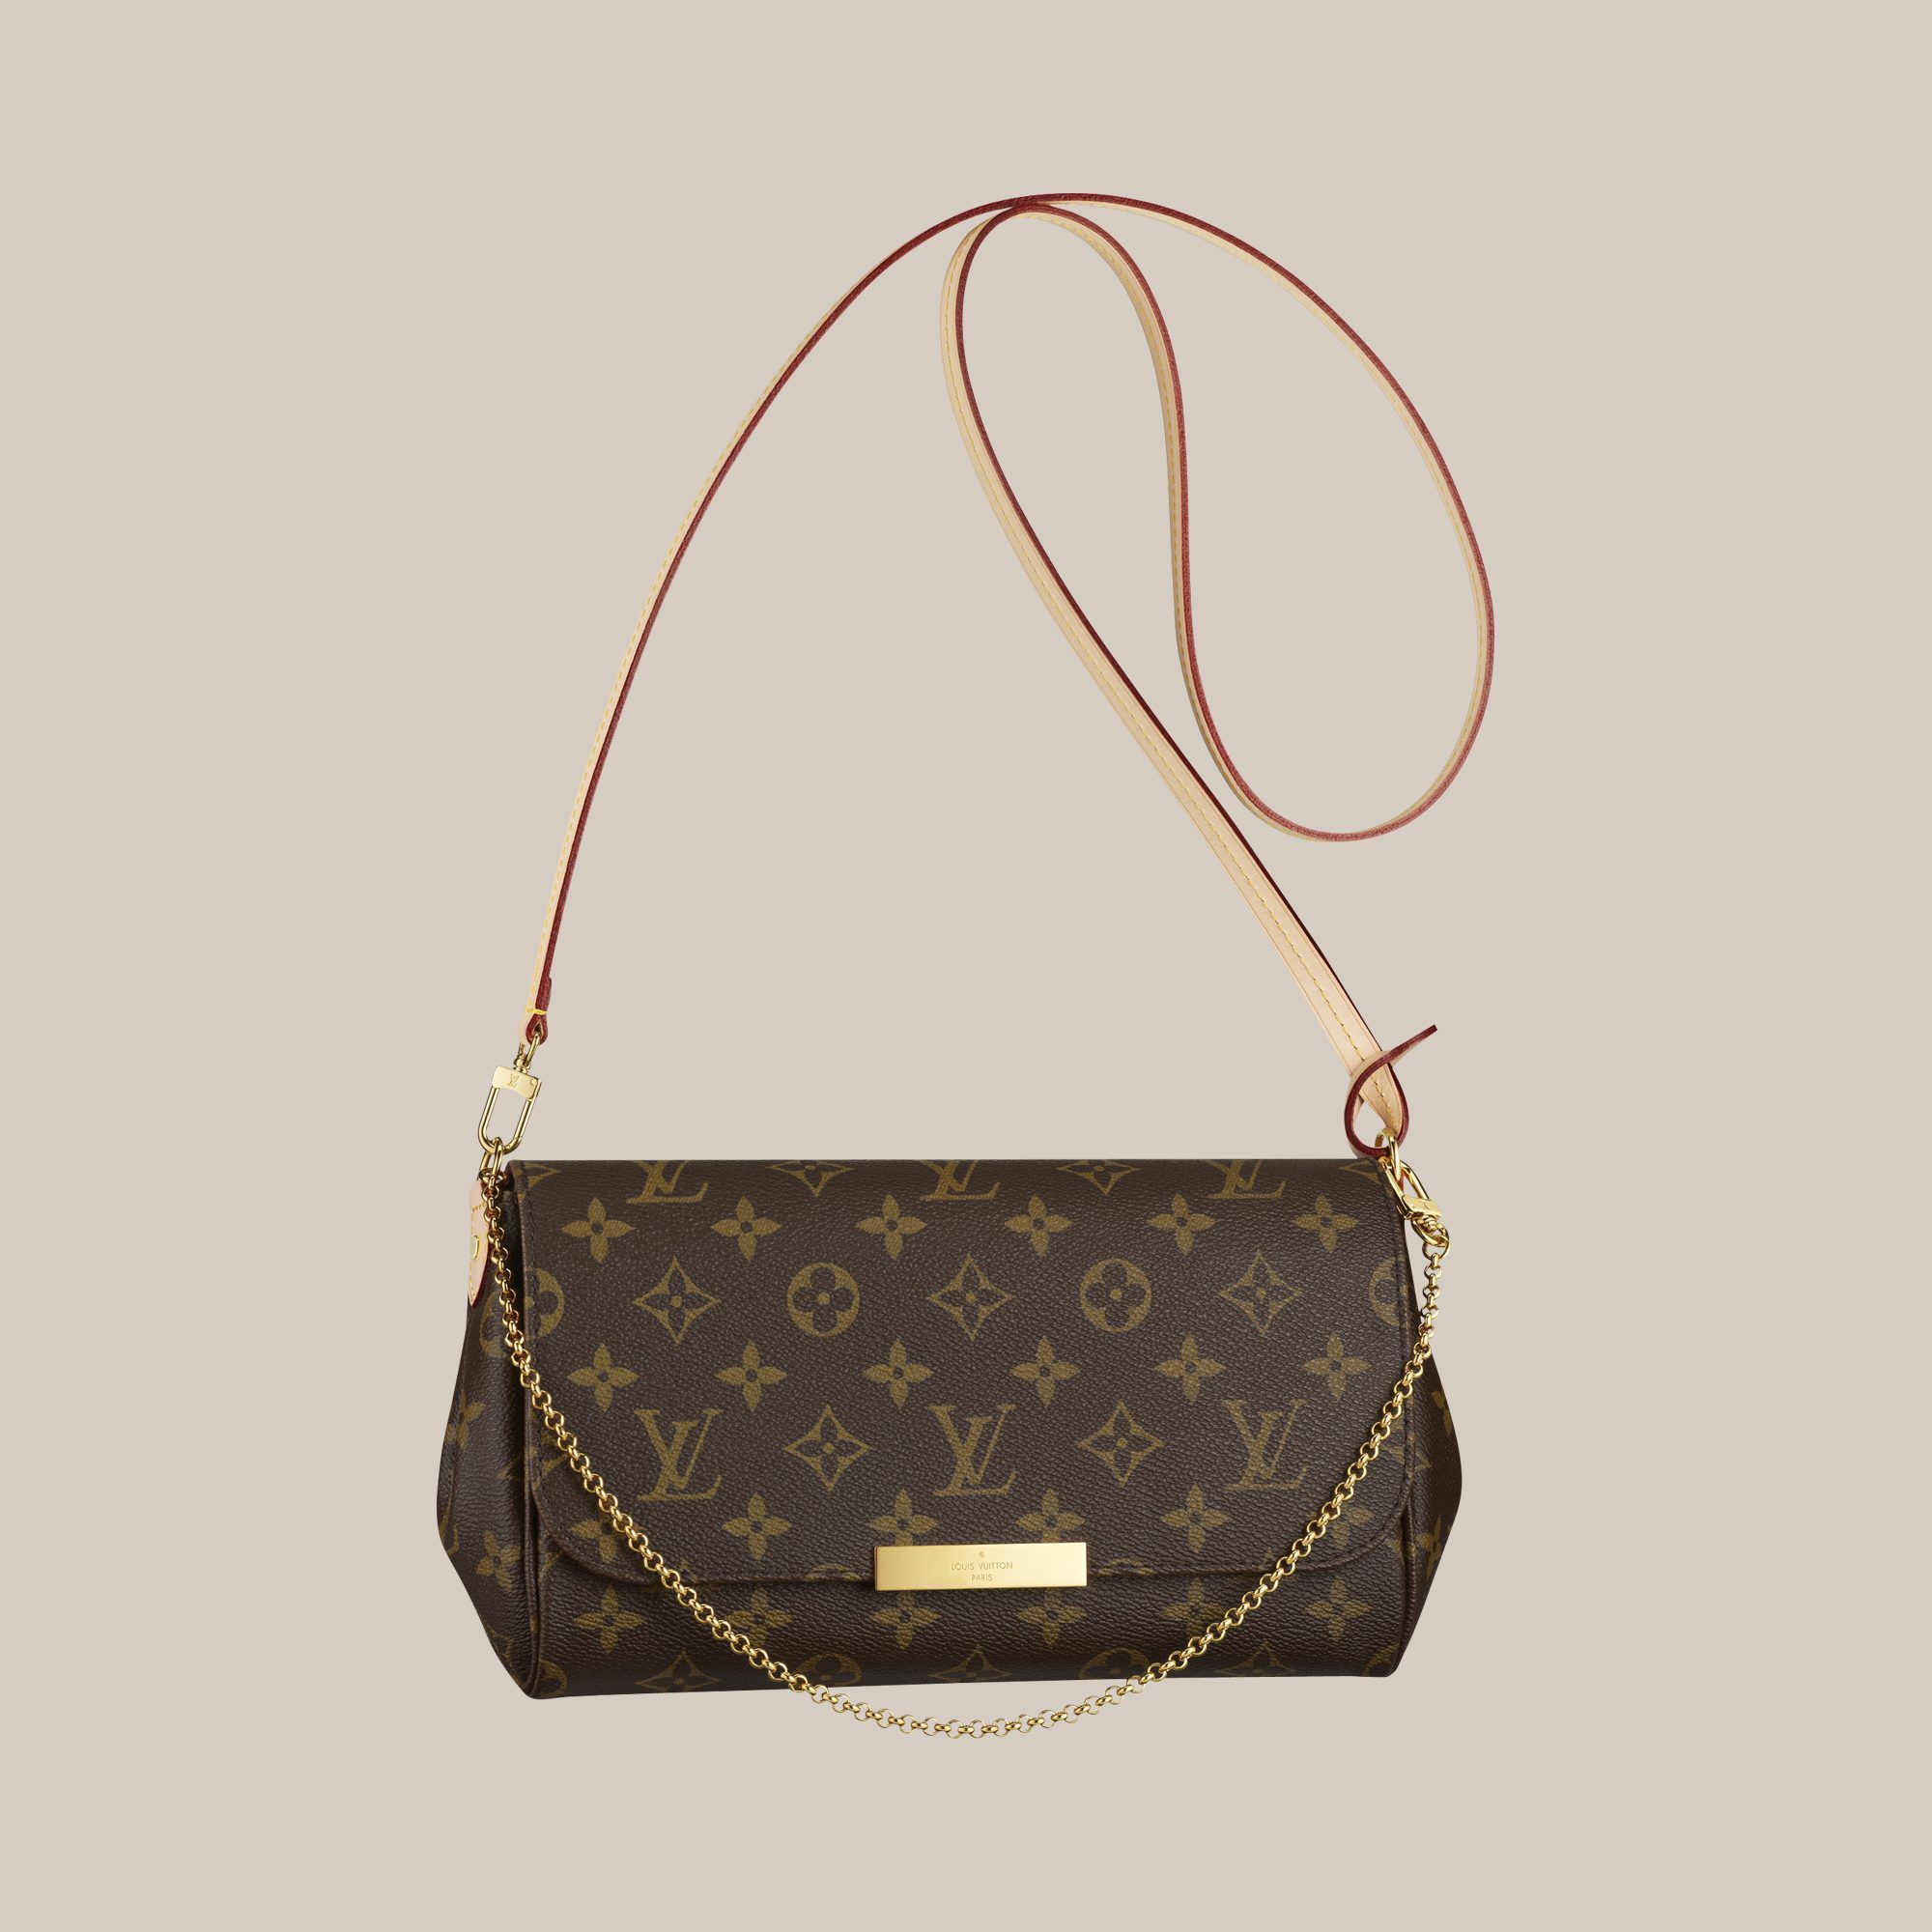 7106a212ec1 Discover Louis Vuitton Favorite PM  An appealingly petite clutch in alluring…    Purse Gorgeousness   Pinterest   Louis vuitton, Louis vuitton handbags  and ...